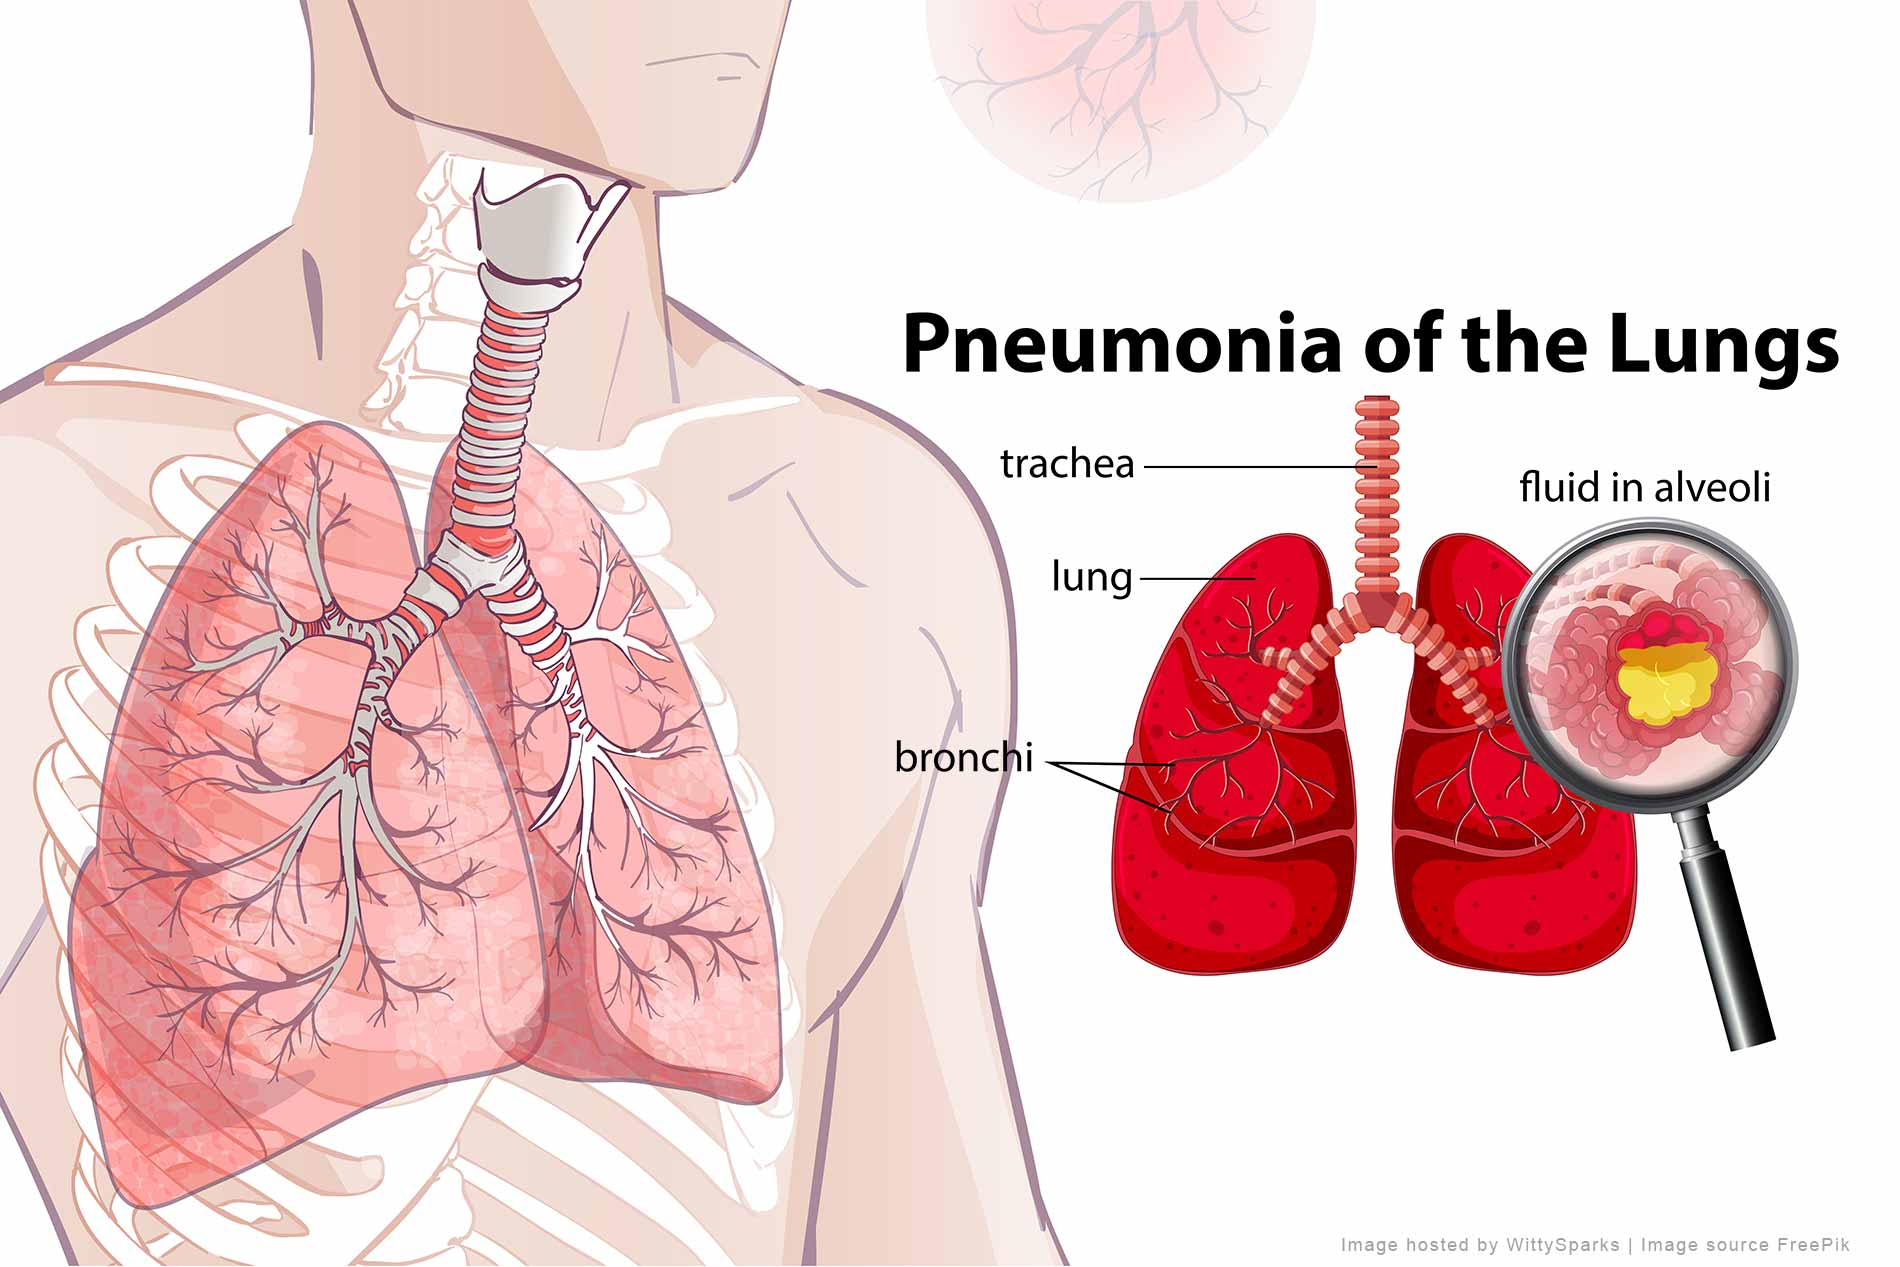 Pneumonia of the lungs